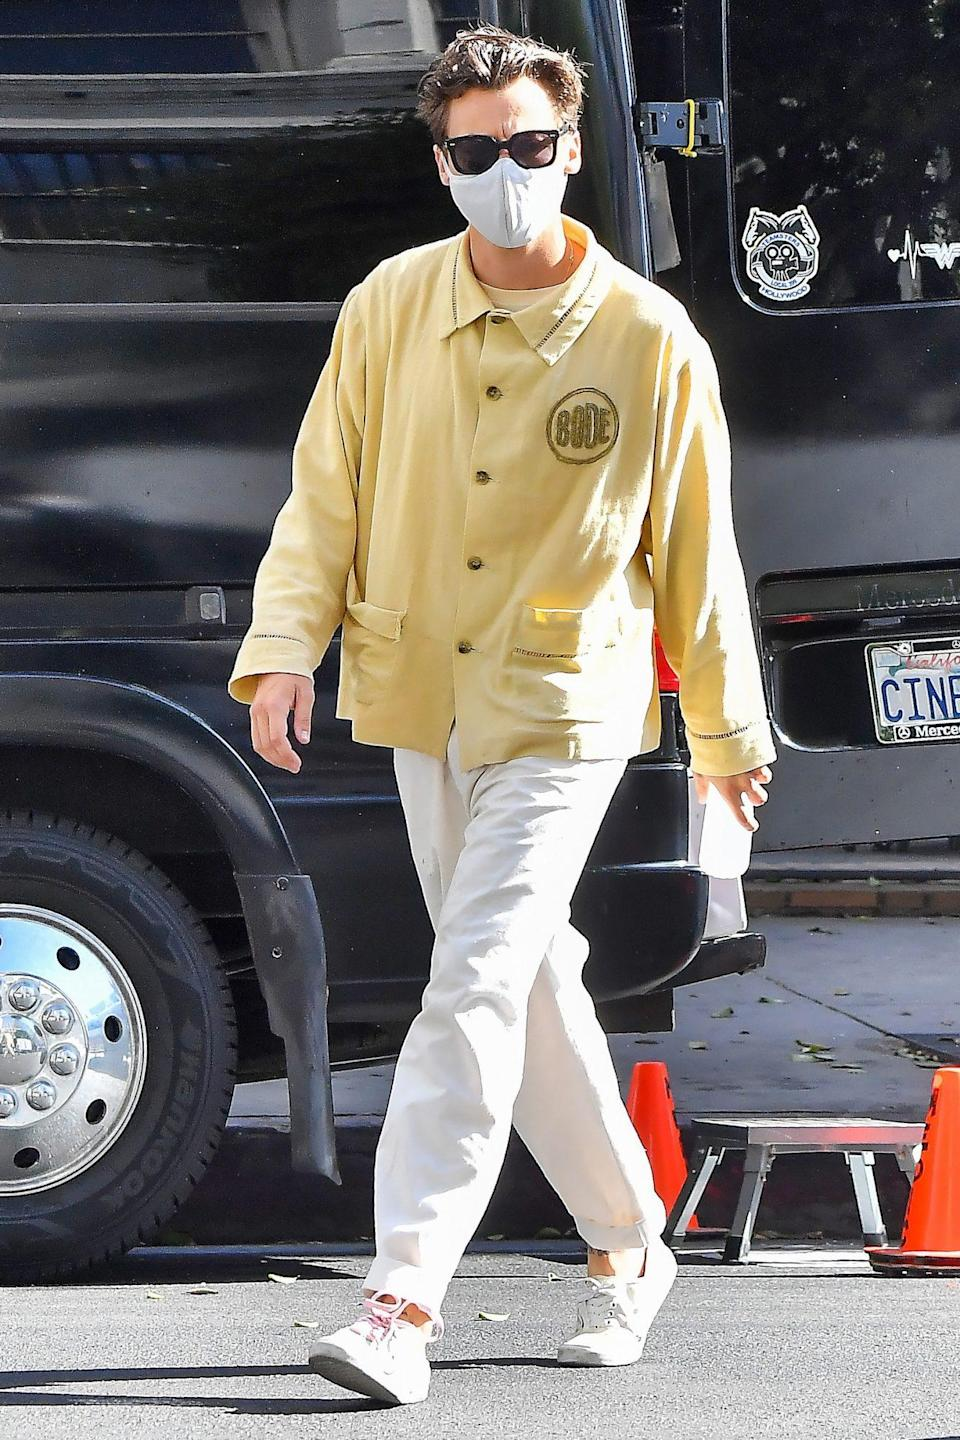 <p>Harry Styles steps out in a yellow shirt as he strolls to the set of <i>Don't Worry Darling</i> in L.A. on Wednesday. </p>